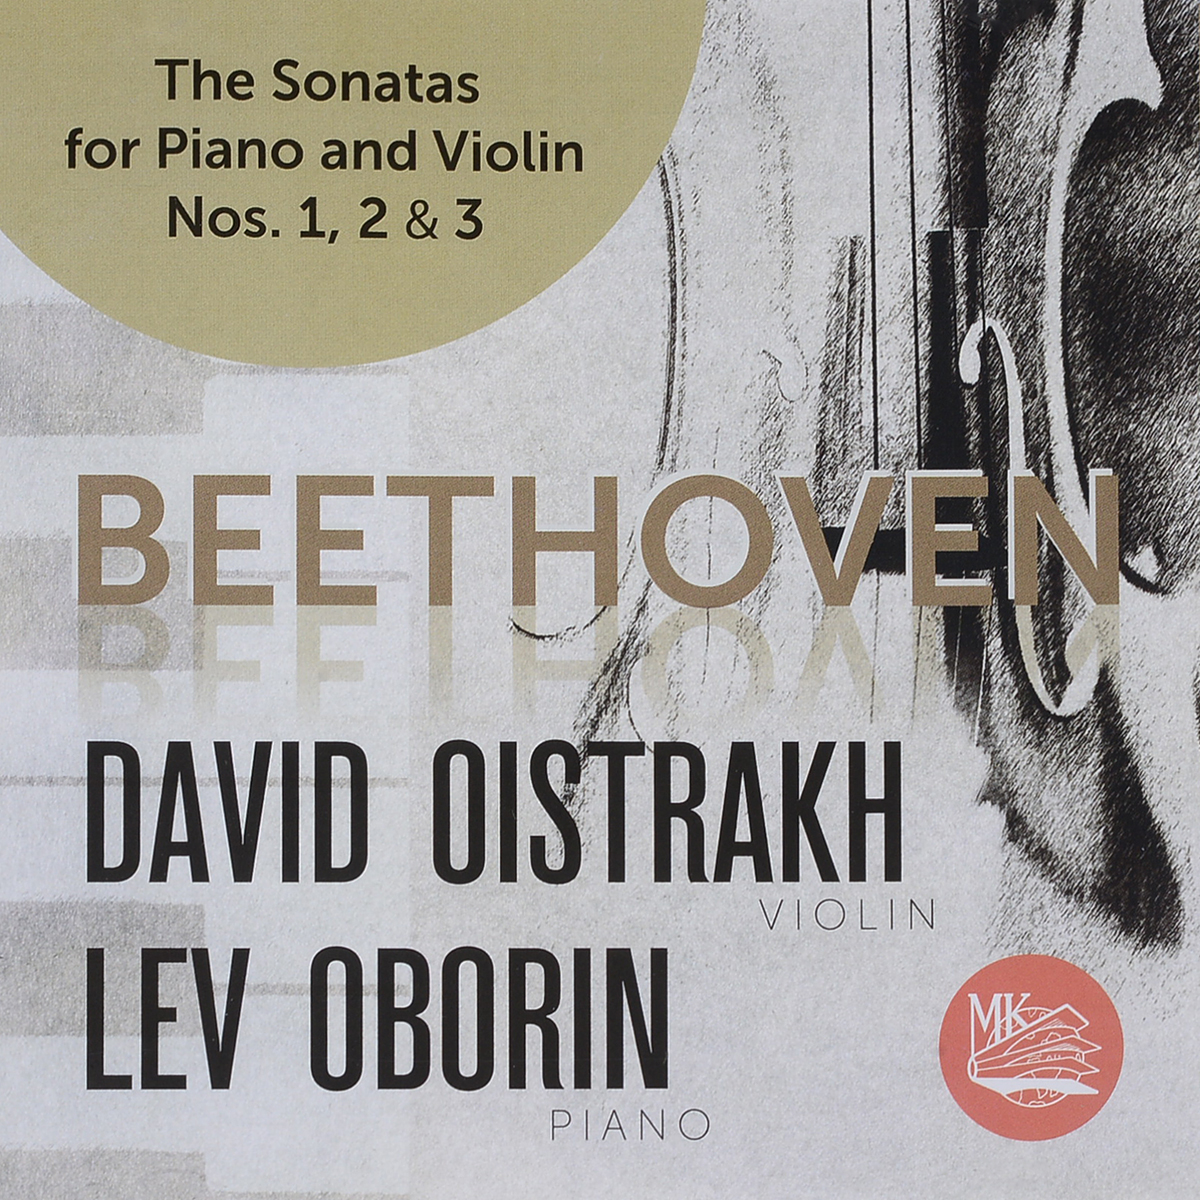 Давид Ойстрах,Лев Оборин David Oistrakh. Lev Oborin. Beethoven. The Sonatas For Piano And Violin No. 1, 2 & 3